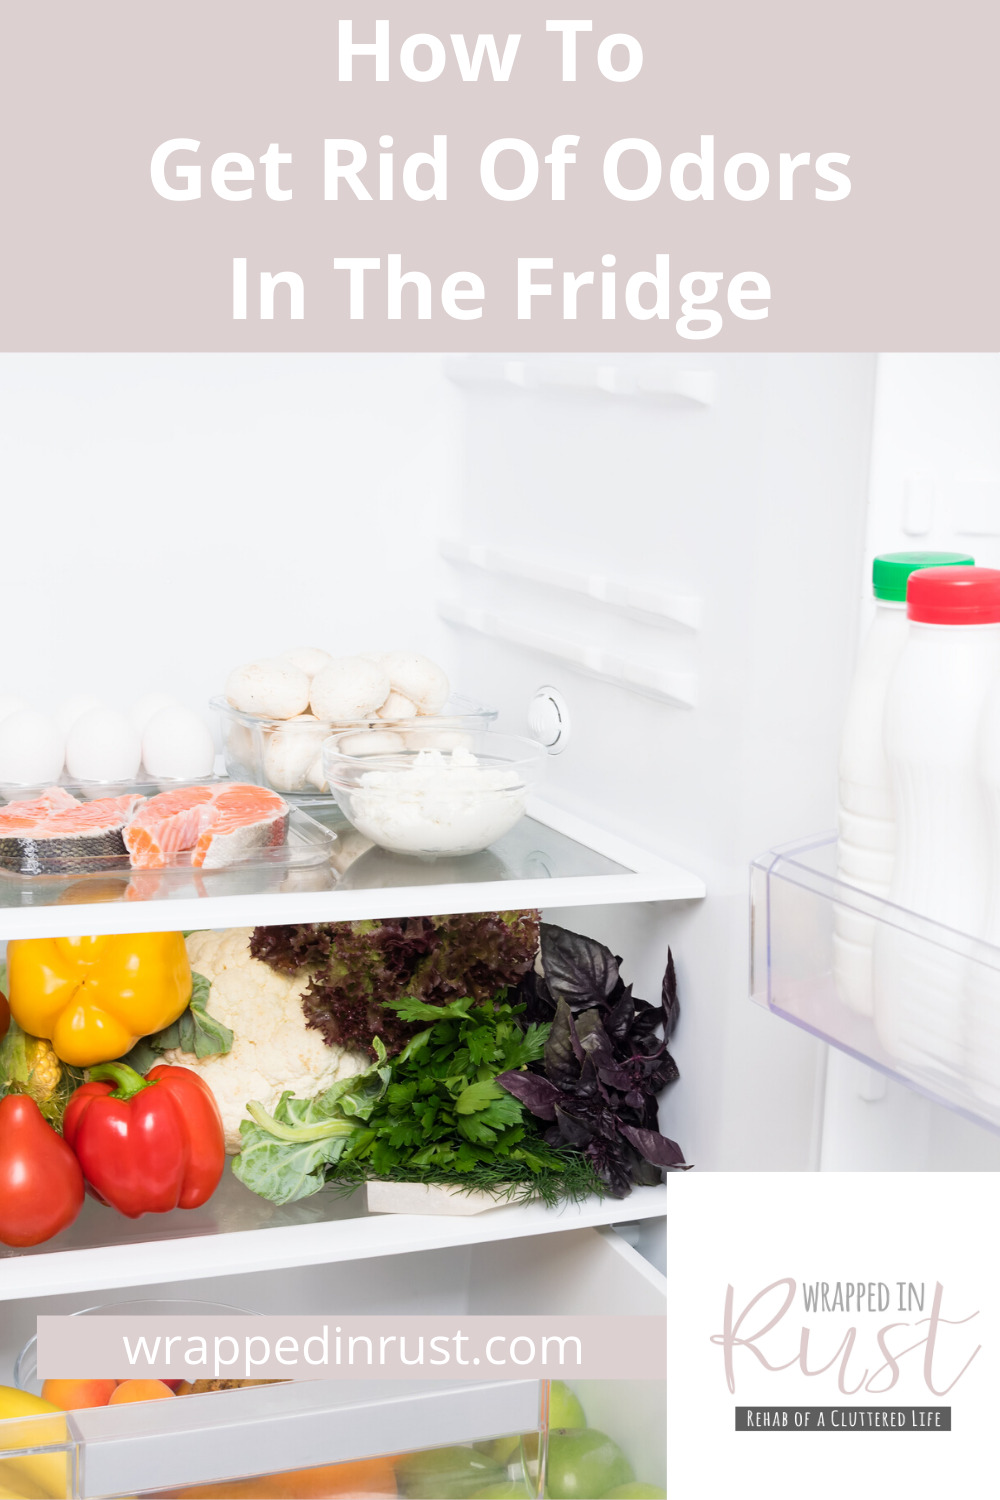 Ever opened your fridge because you were hungry and wanted something to eat only to be disappointed by this gross odor that makes you want to quickly shut the door. Like a fridge monster lives in there. No house wants monsters. Kick them out with these tips how to get rid of odors. #getridofodors #cleaningtips #howtogetridofodors #stinkyodors #wrappedinrustblog